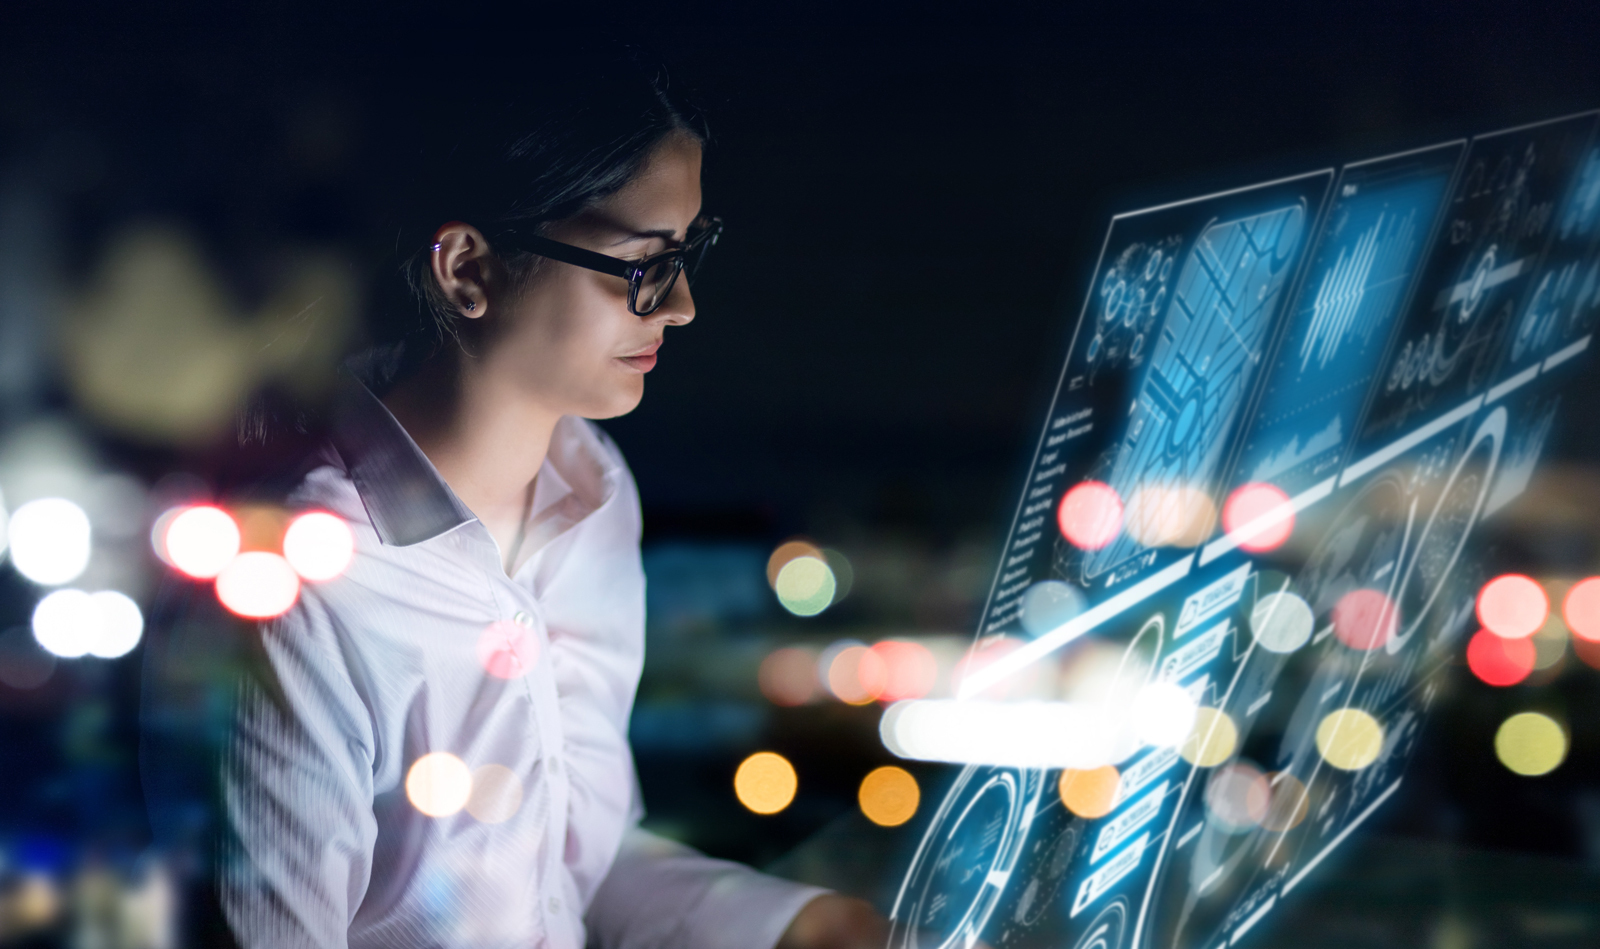 Woman Looking at Futuristic Analytics Screen